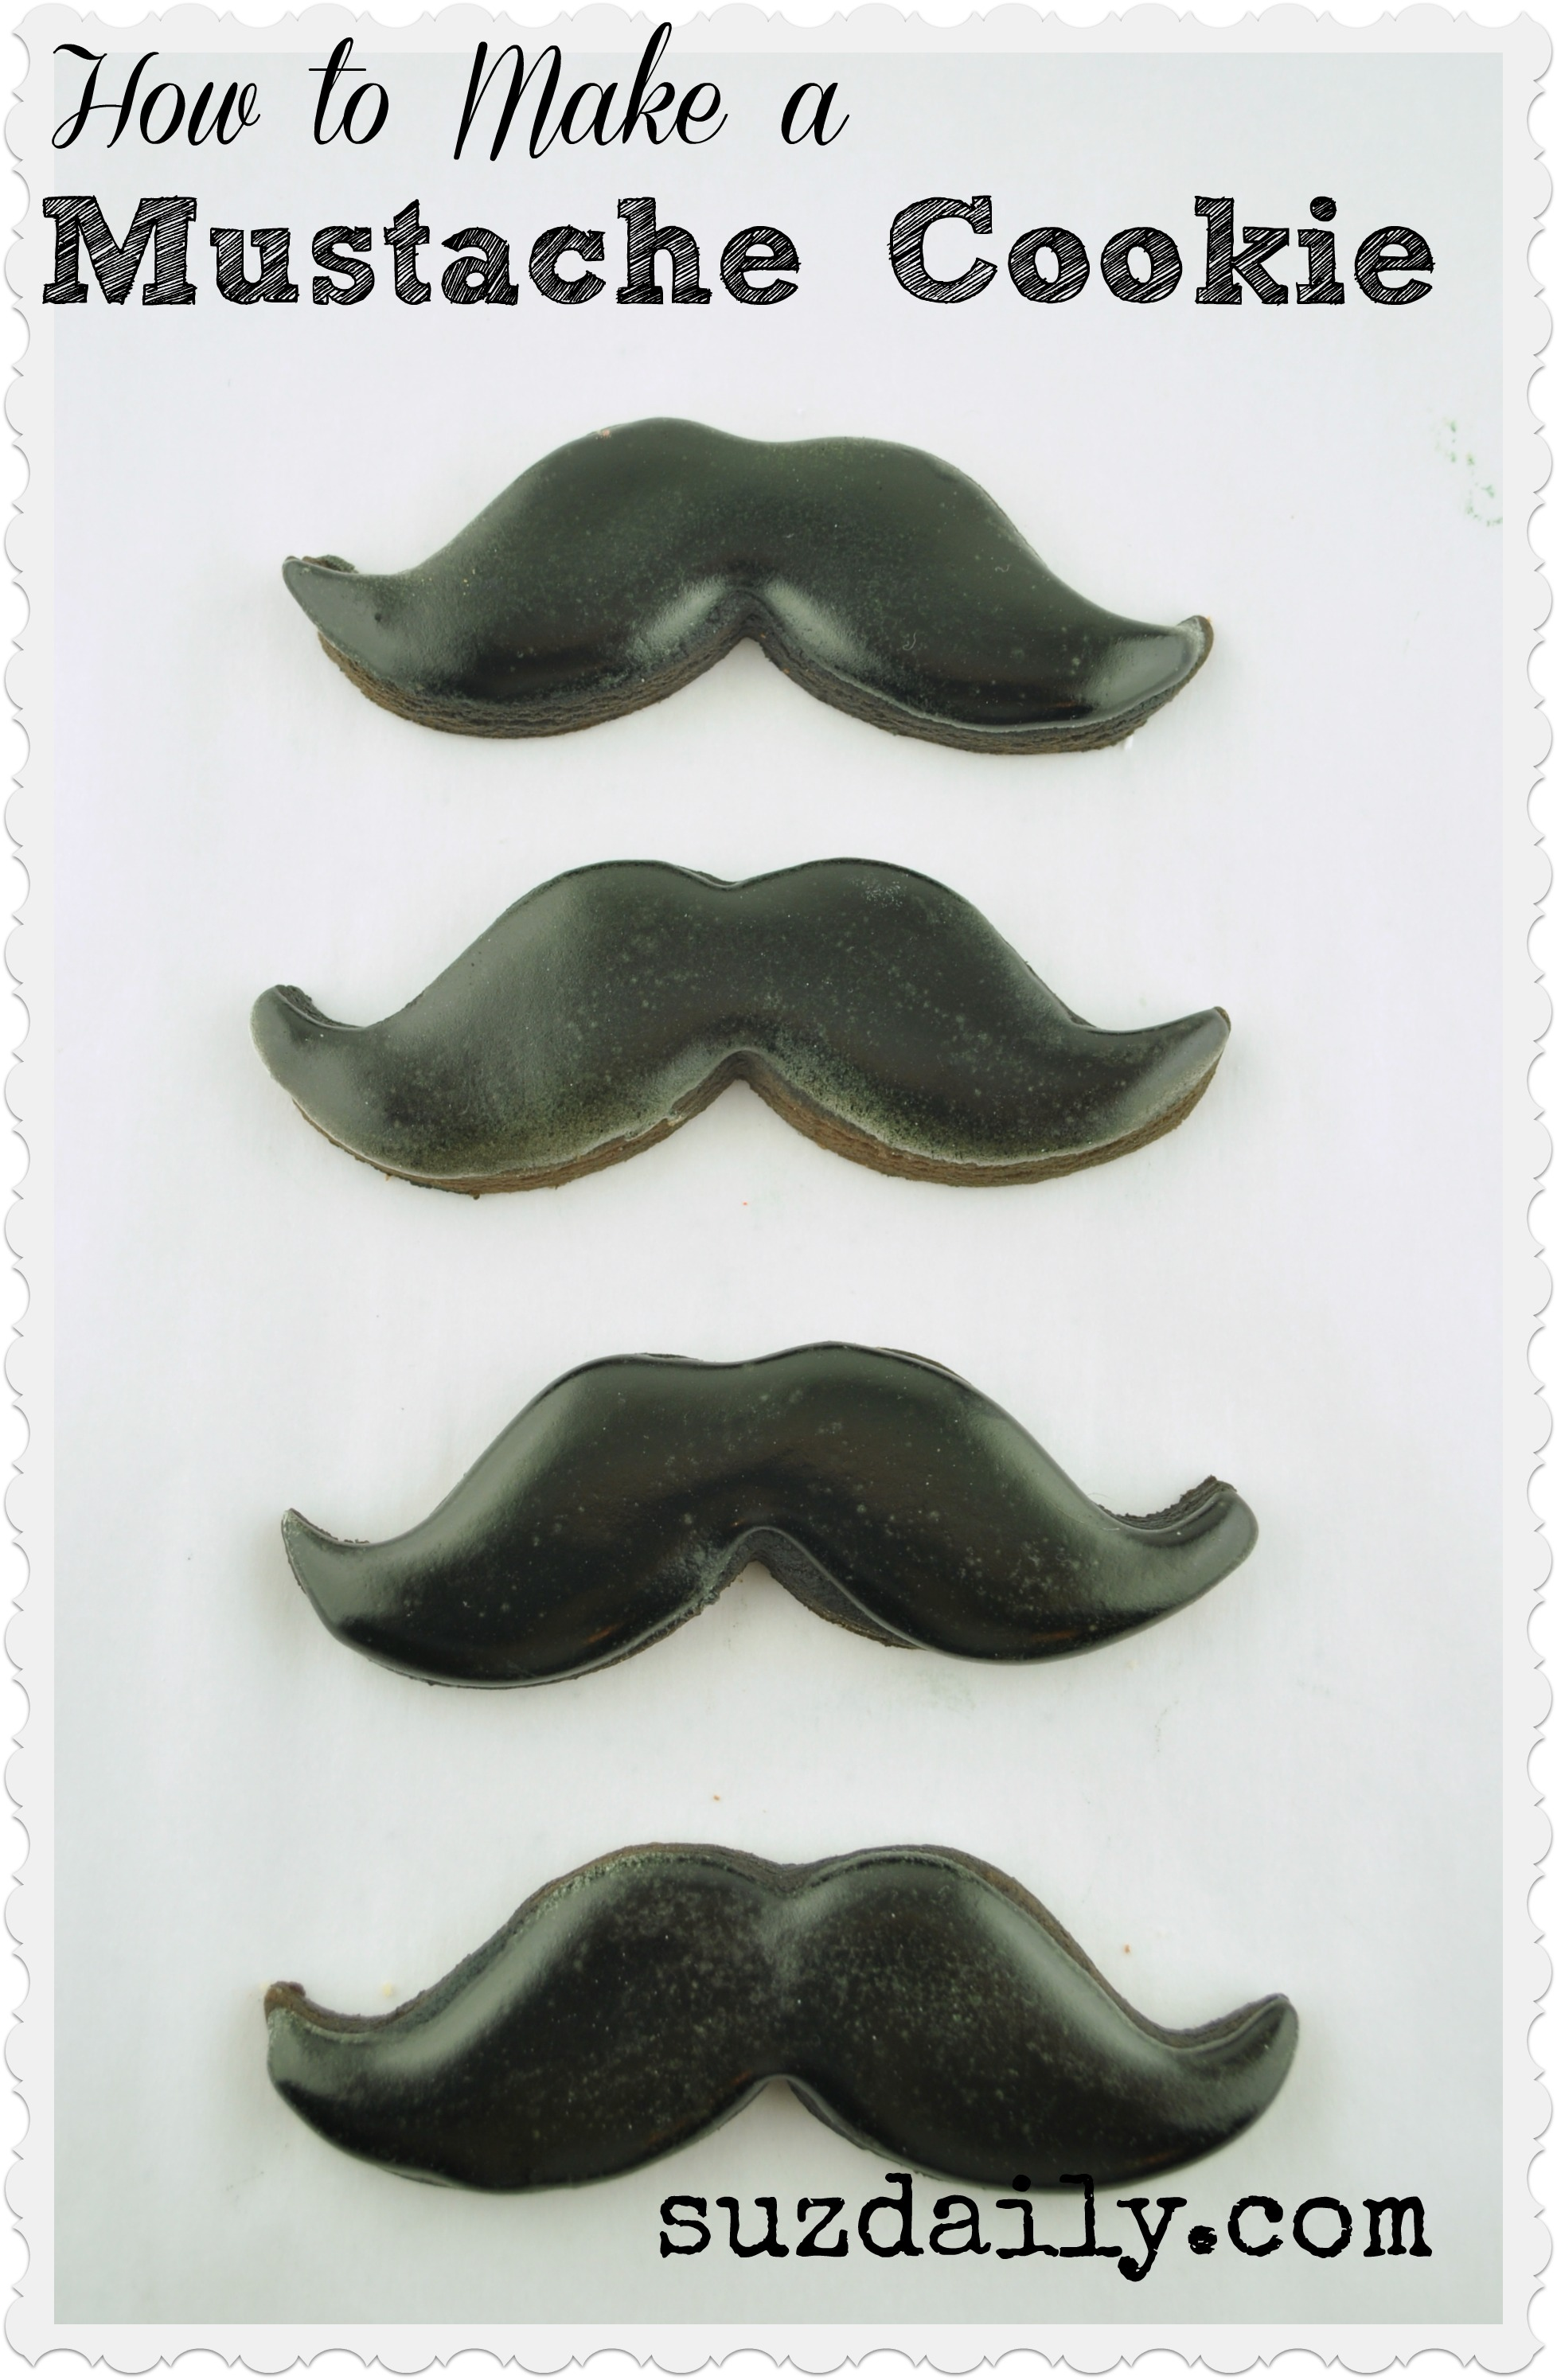 How to make Mustache Cookies